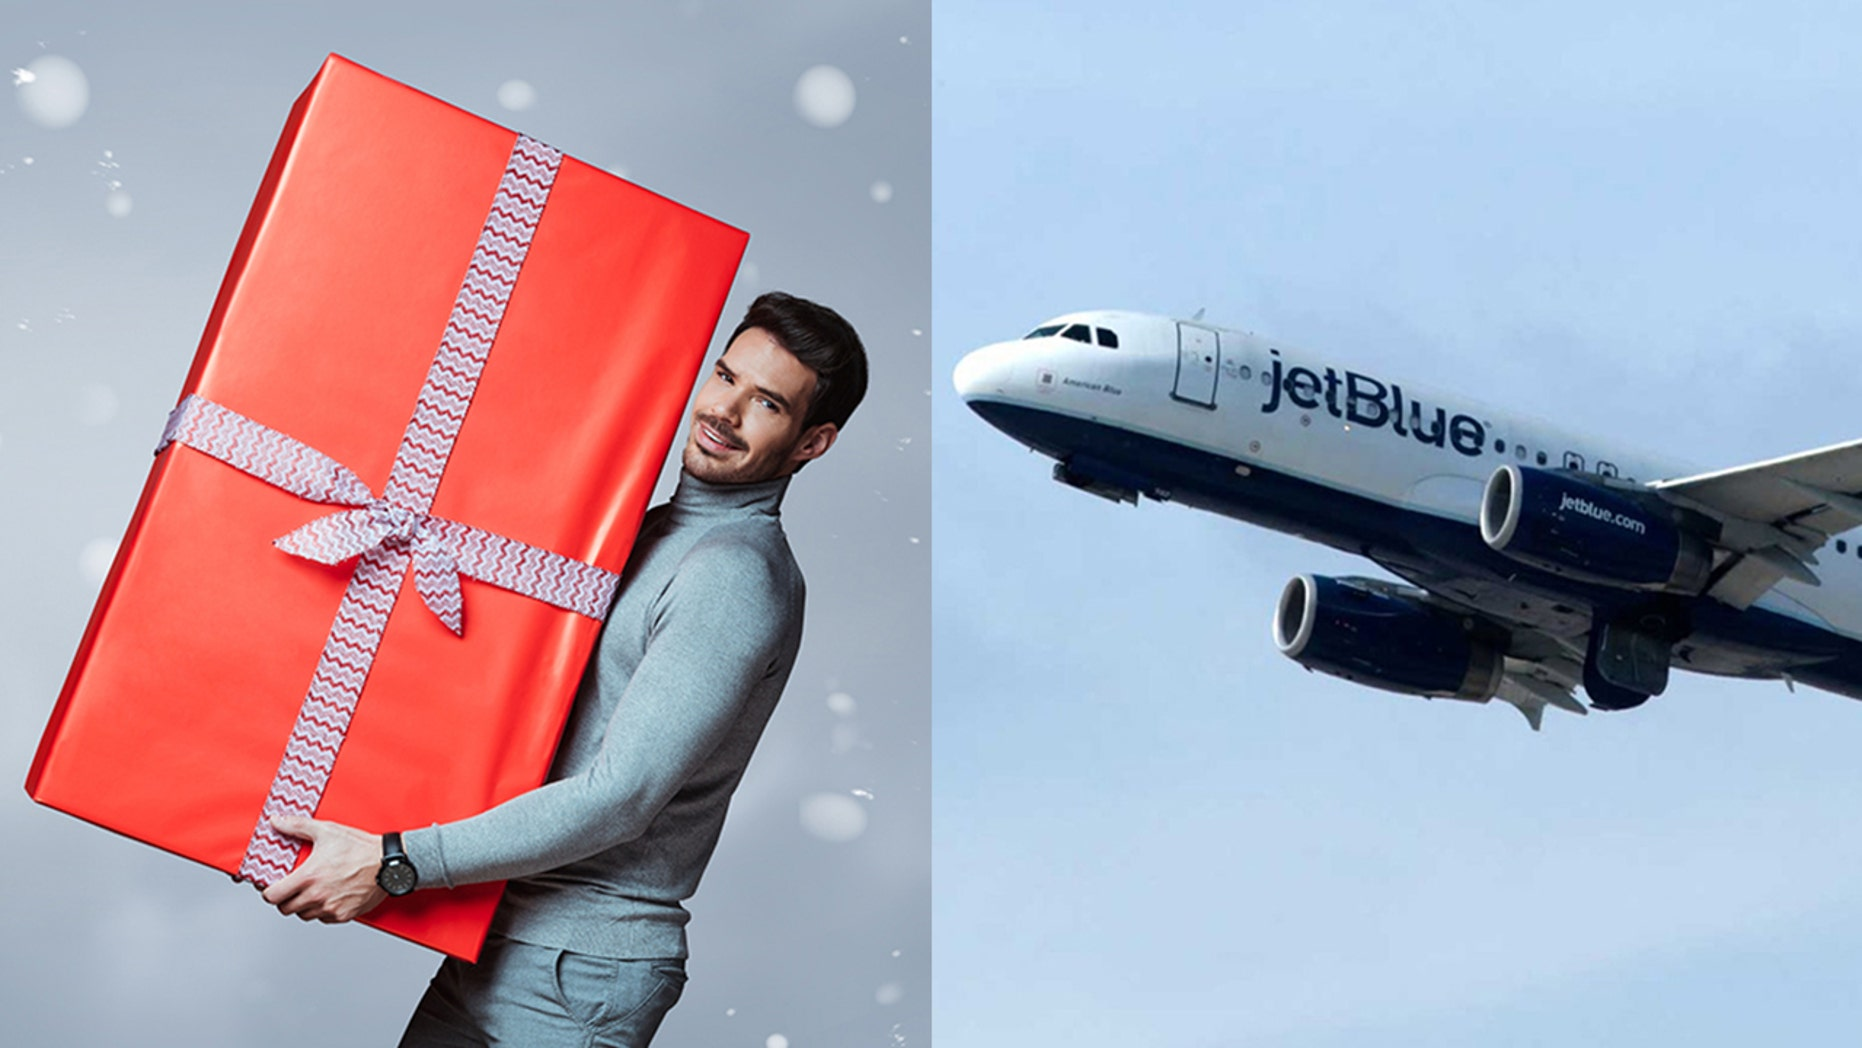 """JetBlue will turn five winners """"into literal presents"""" by gift wrapping them from head to toe and flying them to surprise their loved ones on Dec. 24."""